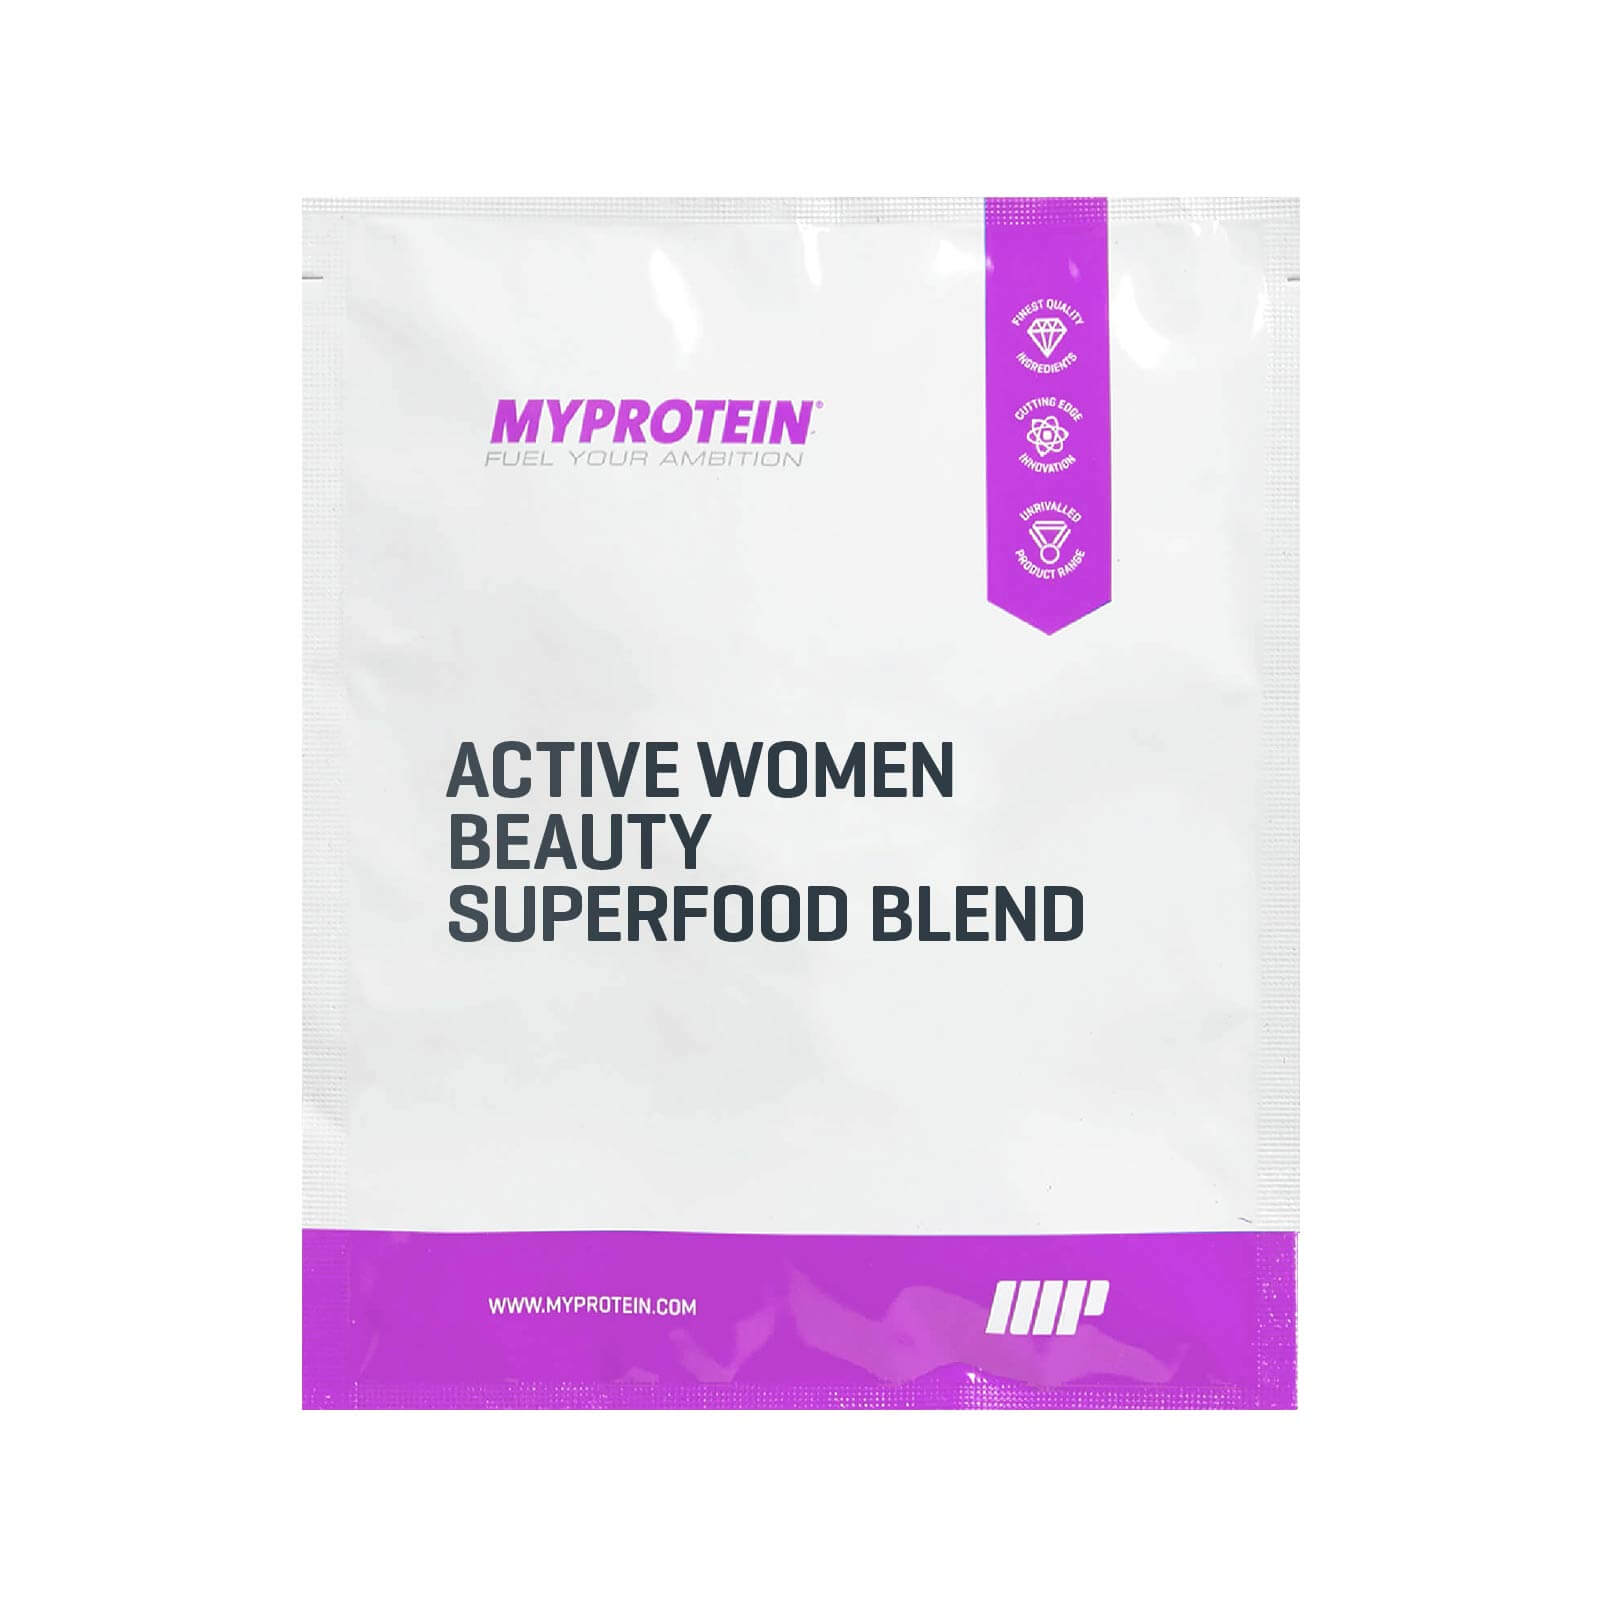 Active Women Superblend Beauty (Probe)